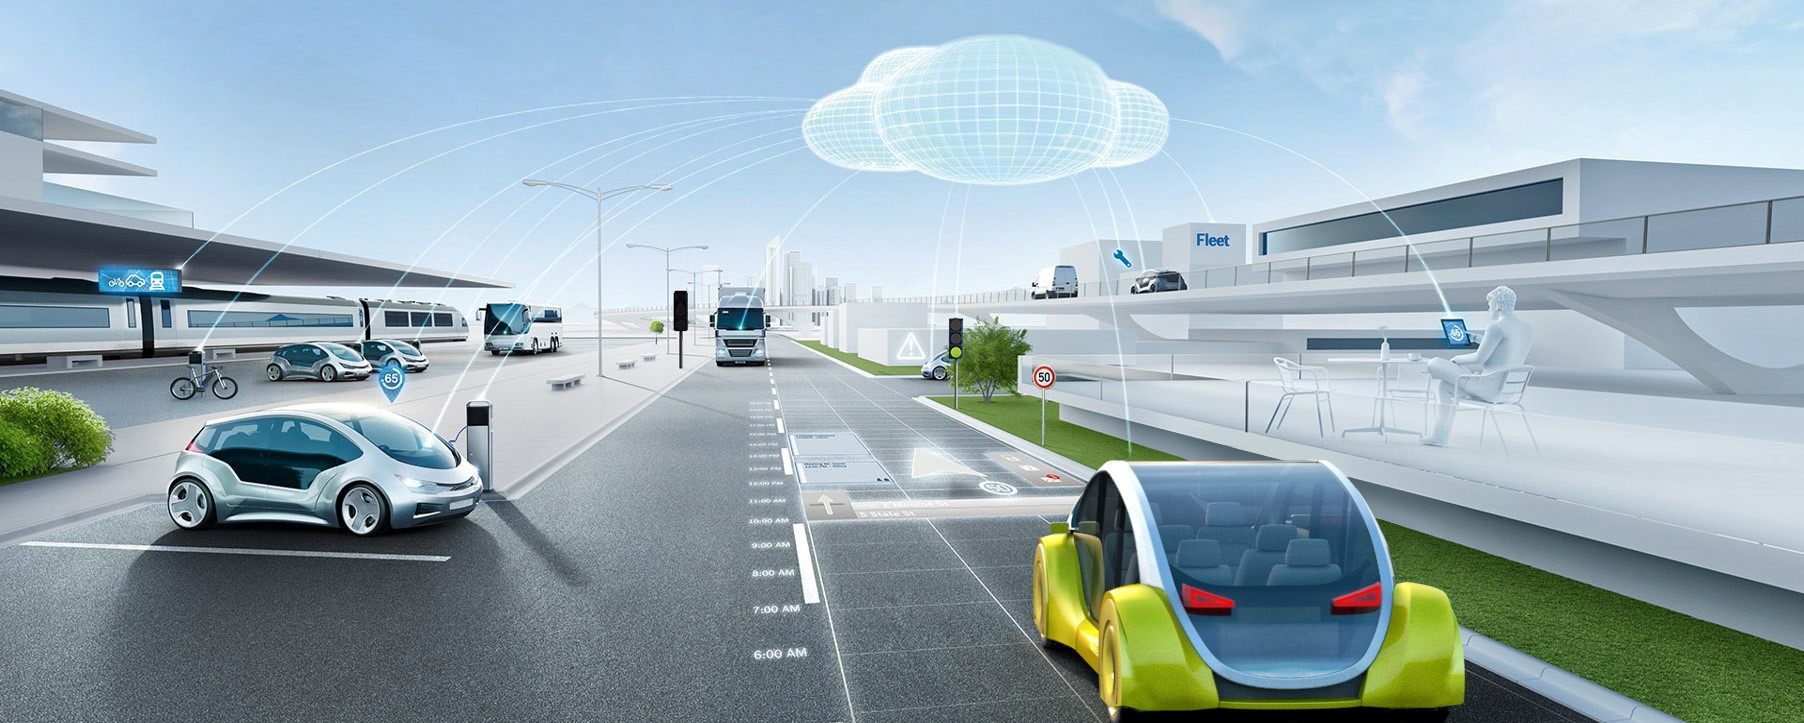 Bosch Automotive Cloud Suite